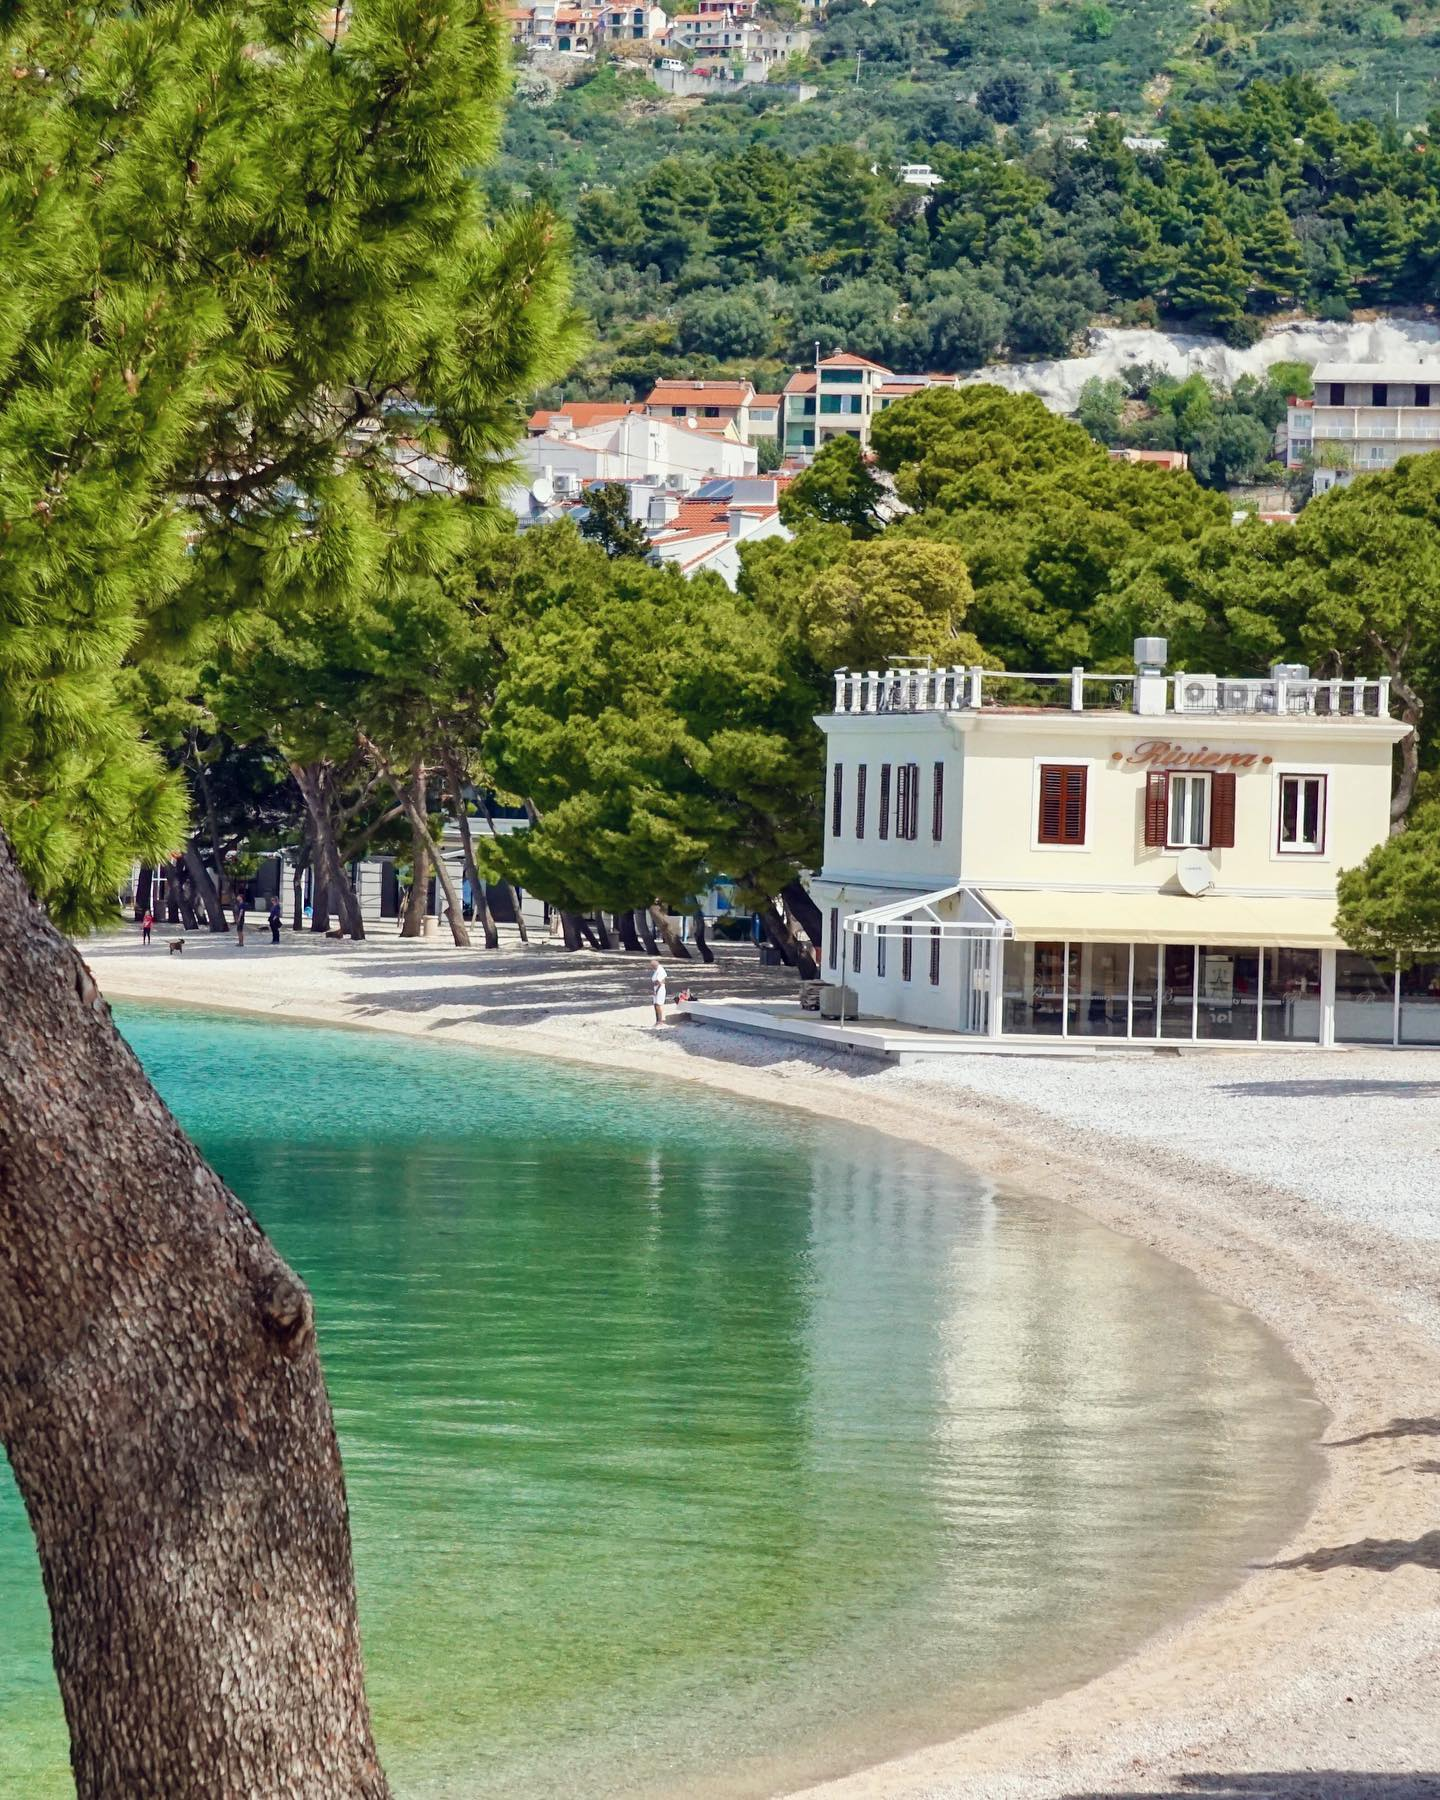 Top 3 beaches in Makarska: The morning view of central beach in Makarska (photo by makarska-riviera.hr)